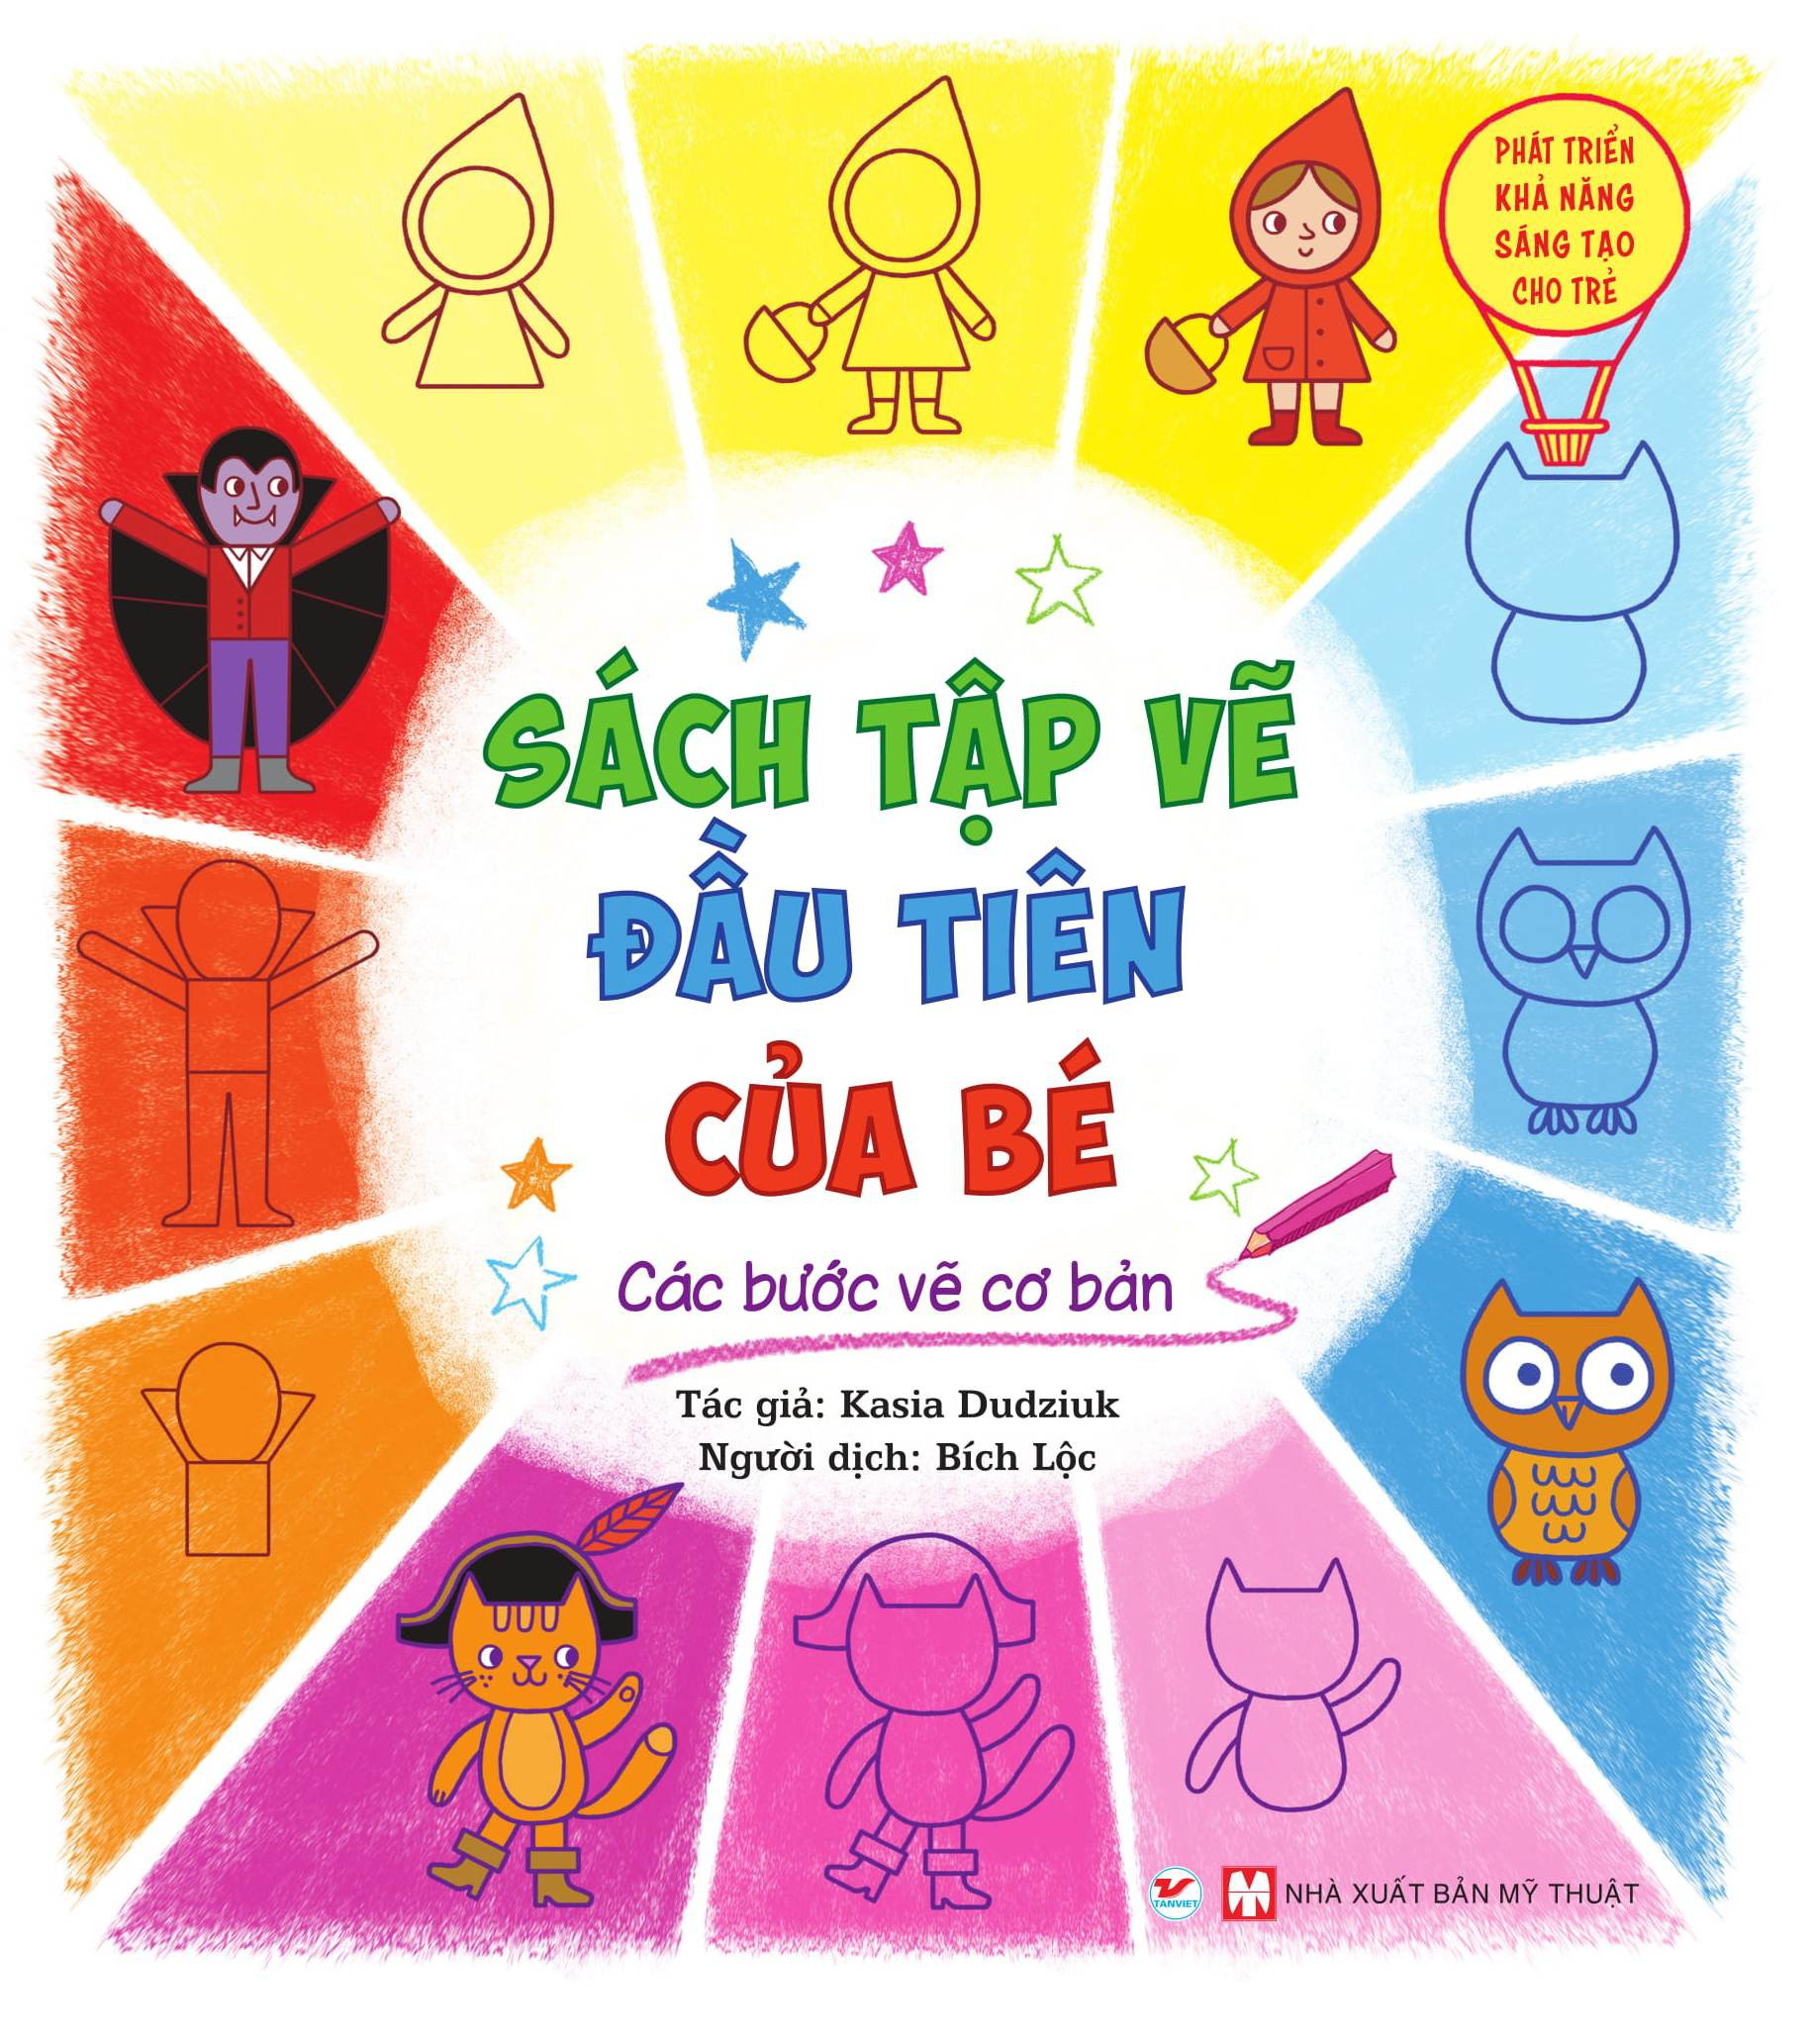 24_Sach tap ve dau tien cua be_Cac buoc ve co ban